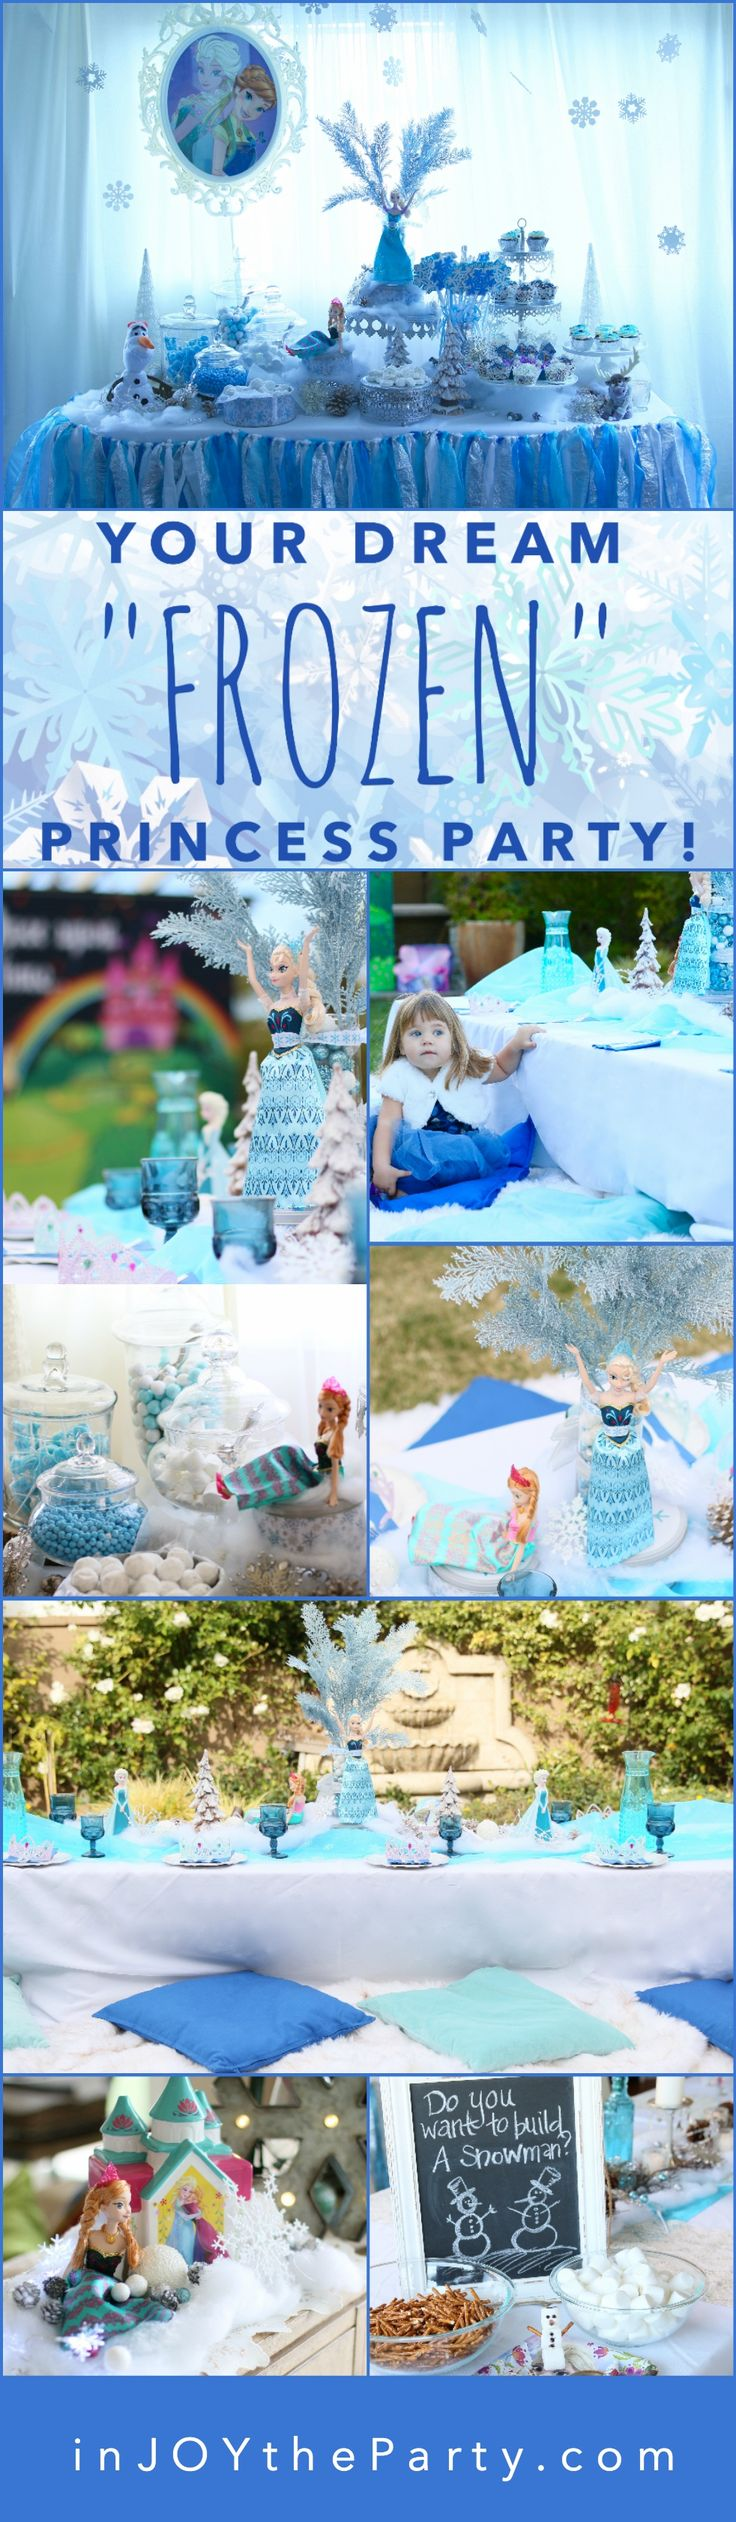 """This entire """"FROZEN"""" Princess birthday party collection is available for you to rent and recreate your own way! Check out inJOYtheParty.com - even if it's just to get inSPIRED for your upcoming parties!"""